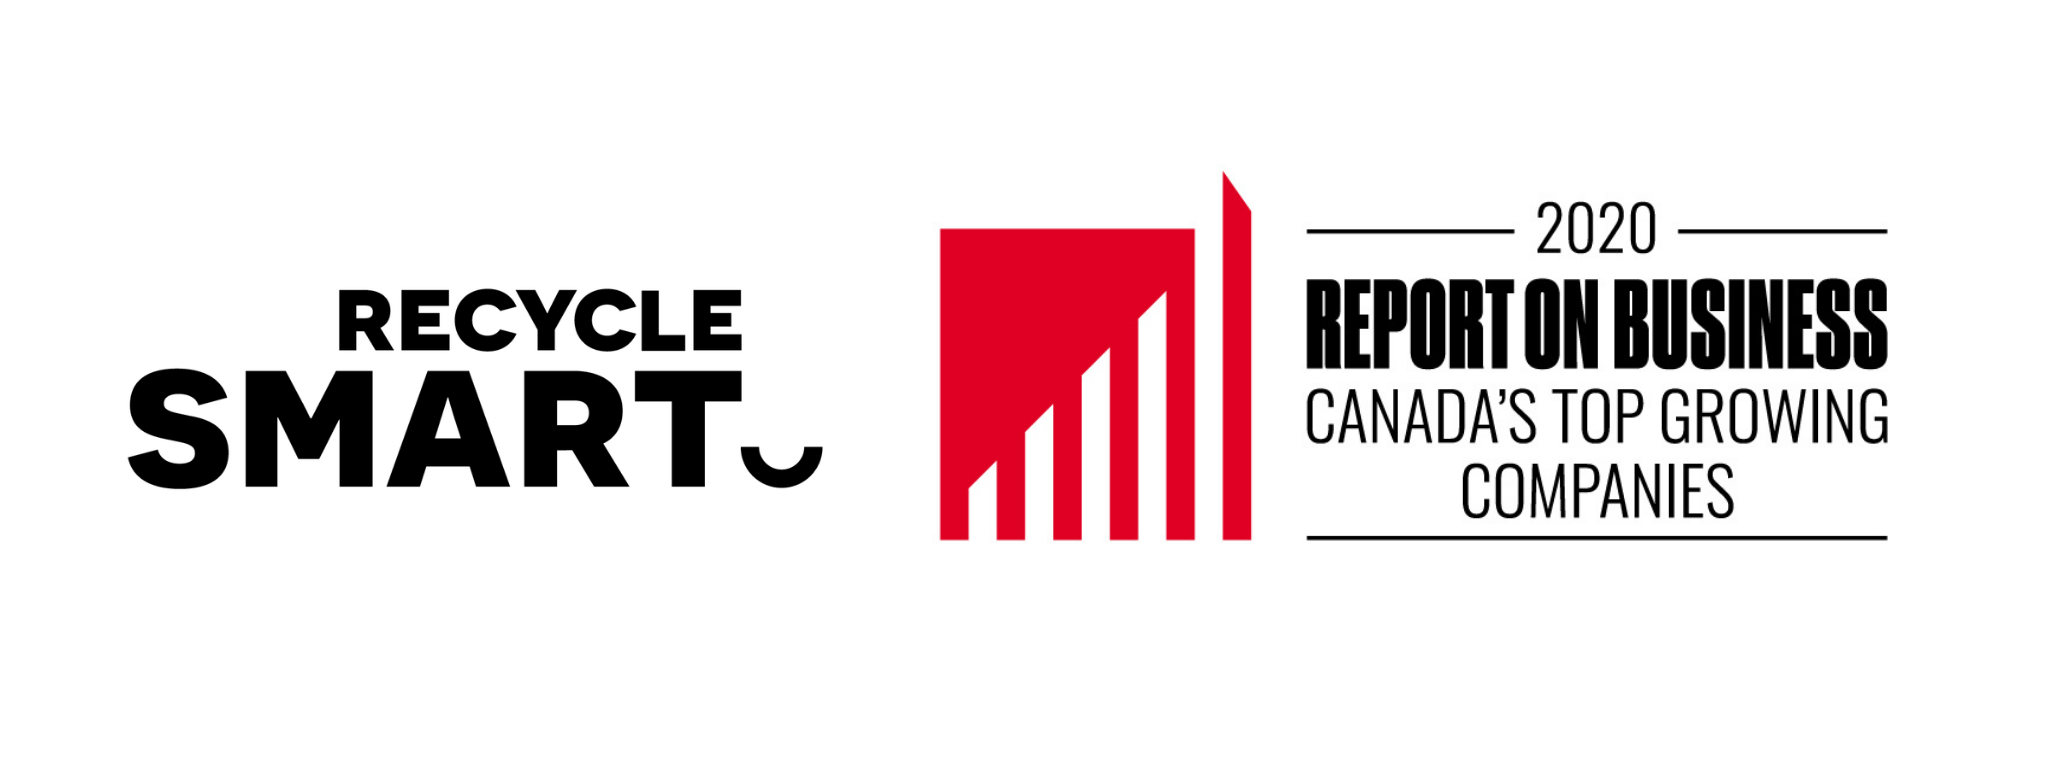 RecycleSmart Hits the Charts at #228 on The Globe and Mail's Second-Annual Ranking of Canada's Top Growing Companies